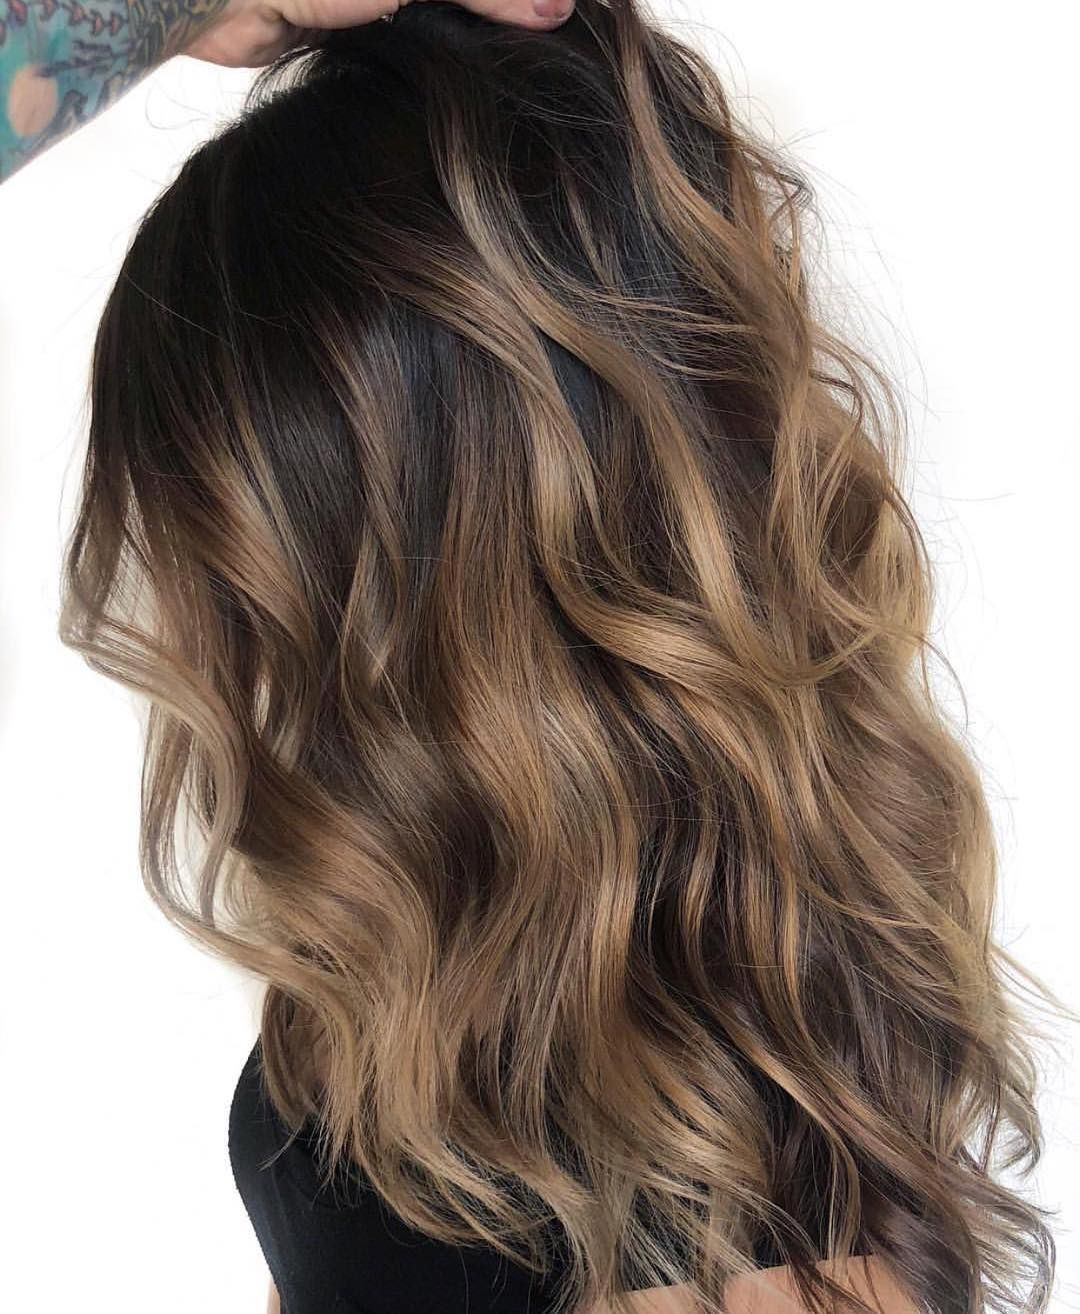 Women Wigs Lace Front Hair Loreal Excellence 9 Ash Blonde Ombre Extensions 613 Extensions In 2020 Hair Color Balayage Brown Hair Balayage Hair Looks